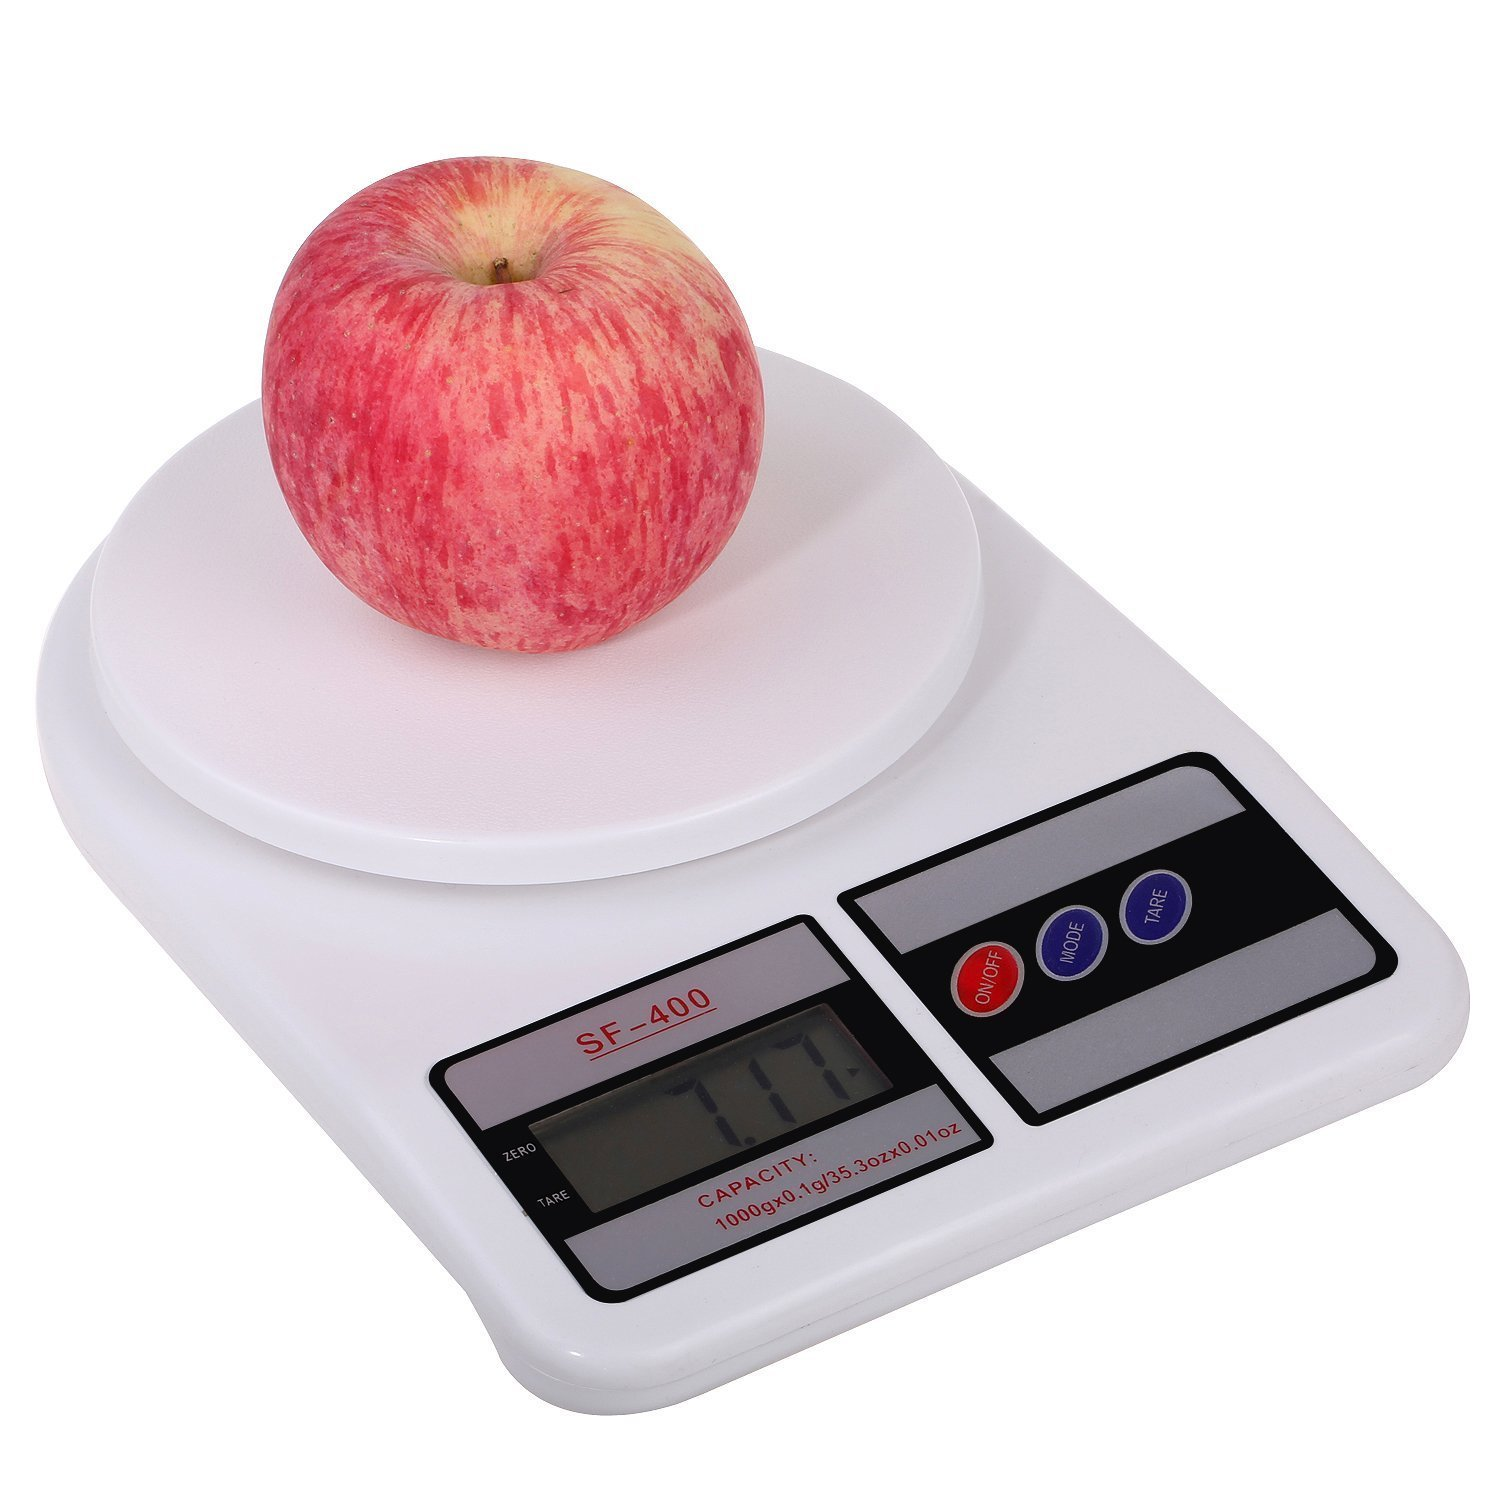 Captivating Buy Digital Kitchen Scale Electronic Digital Kitchen Weighing Scale 10 Kgs  Weight Measure Spices Vegetable Liquids  SF 400, Ivory Online At Low Prices  In ...